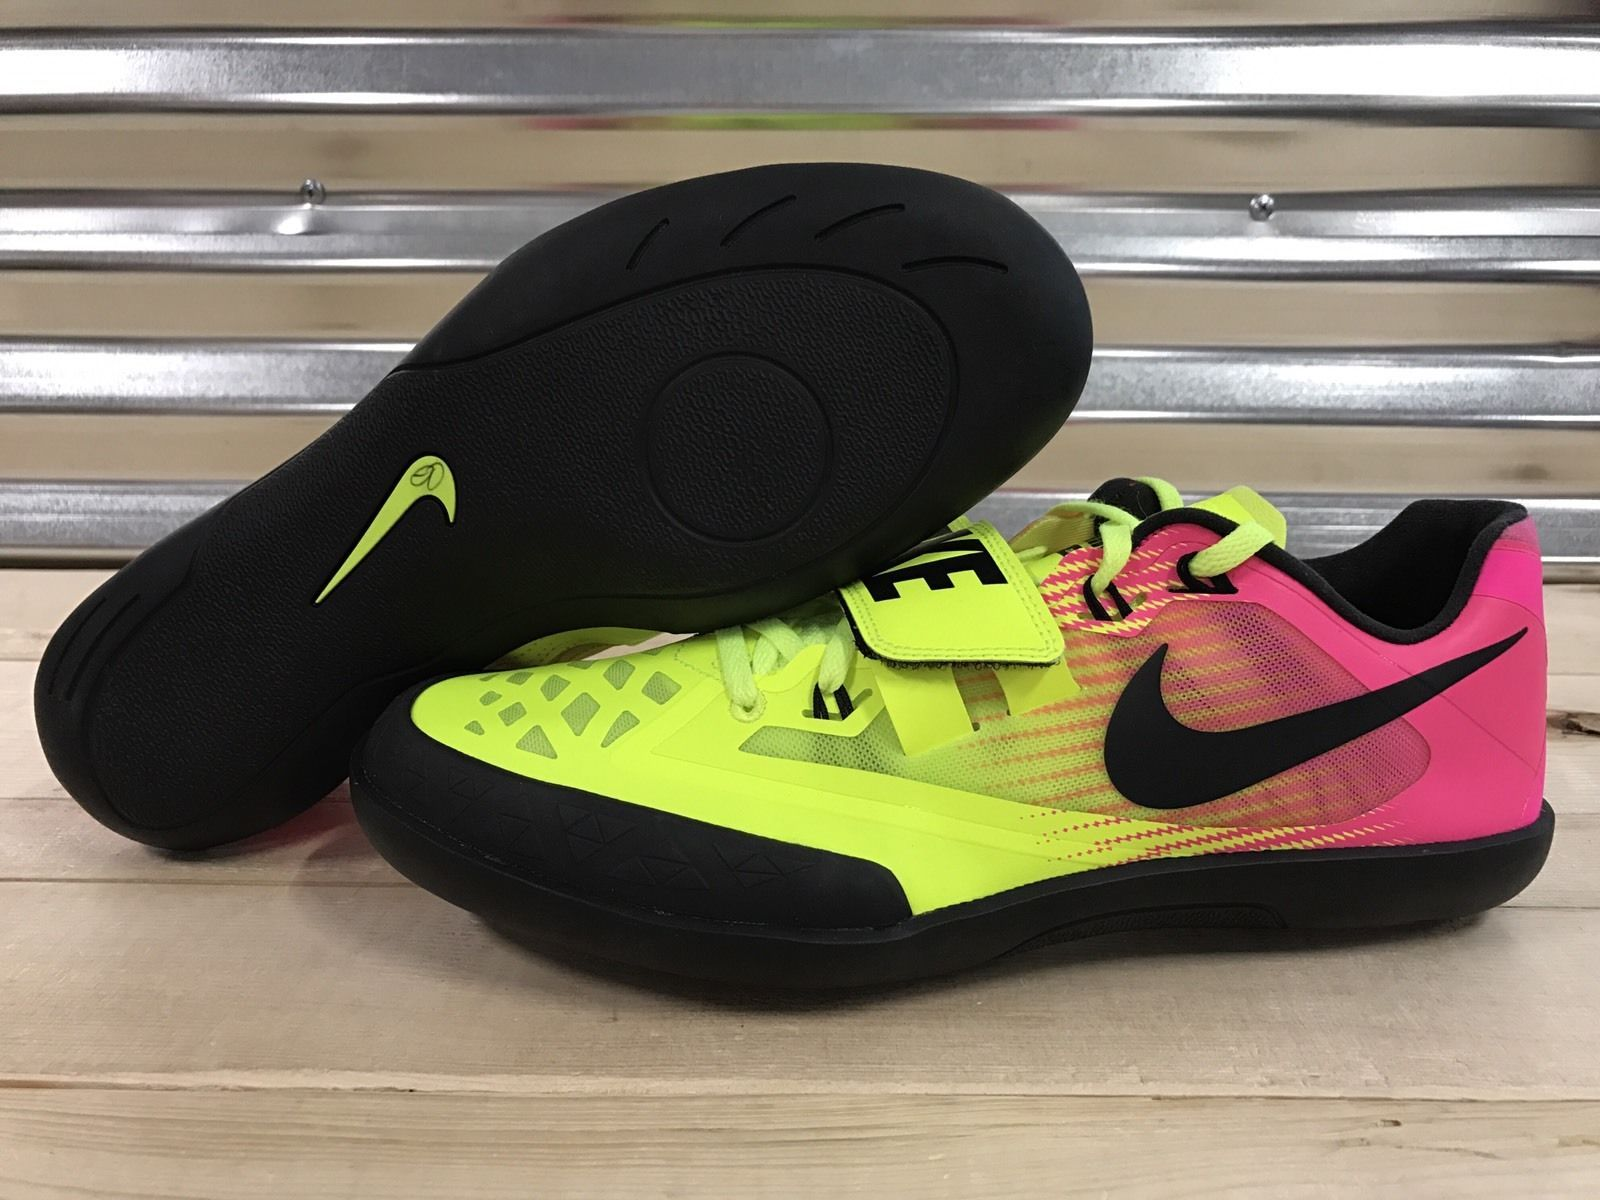 a37226f6111ff8 Nike Zoom SD 4 Throwing Shoes Shotput Discus Track Volt Pink SZ (  685135-999 )